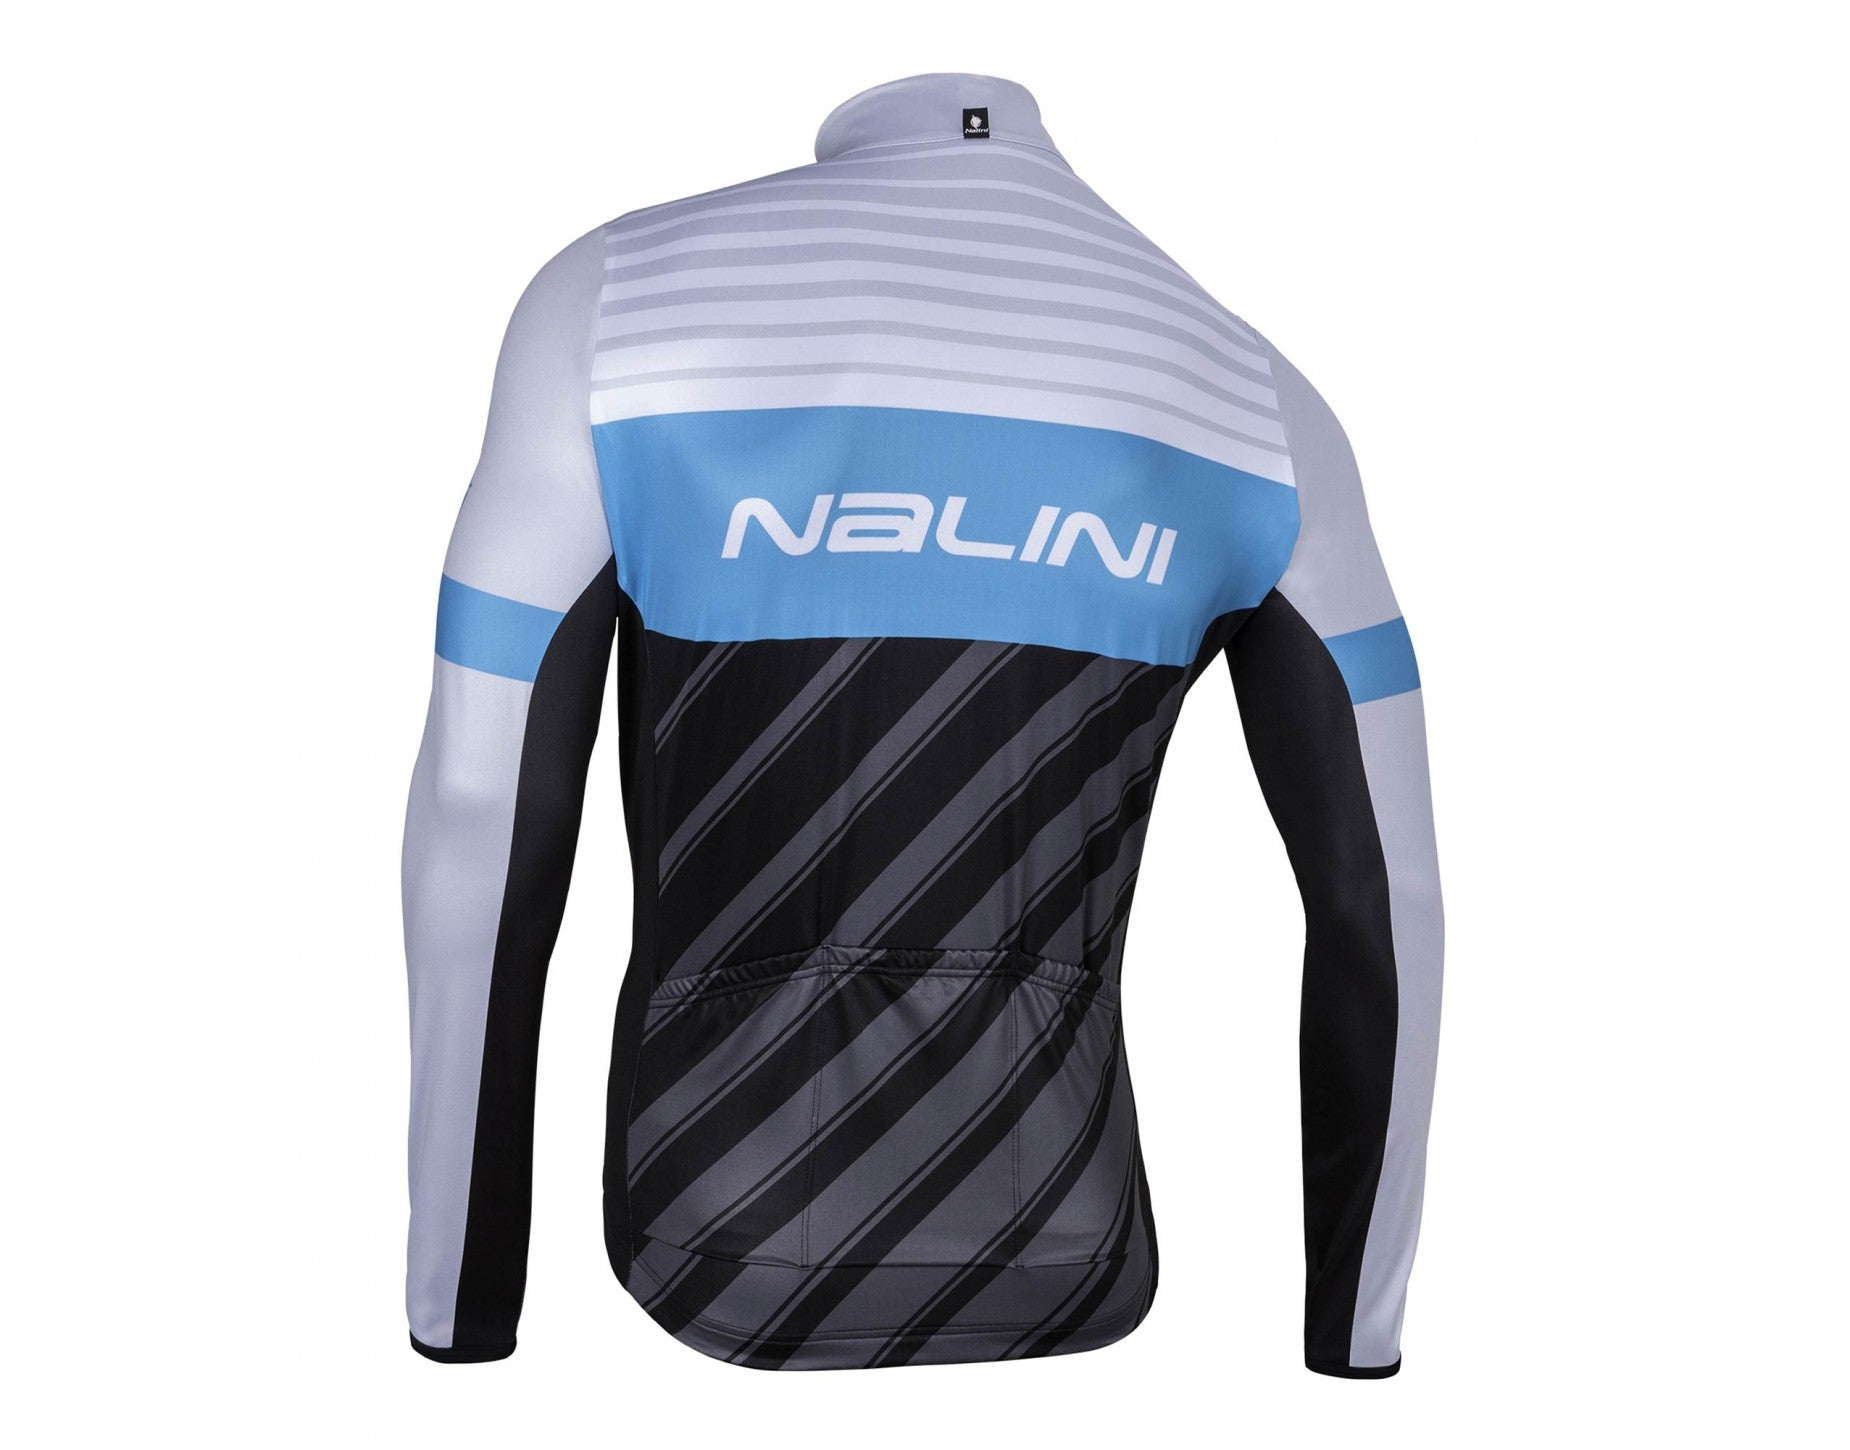 e13f982b5 2018 Nalini Mizar Long Sleeve Cycling Jersey - Winter Collection ...